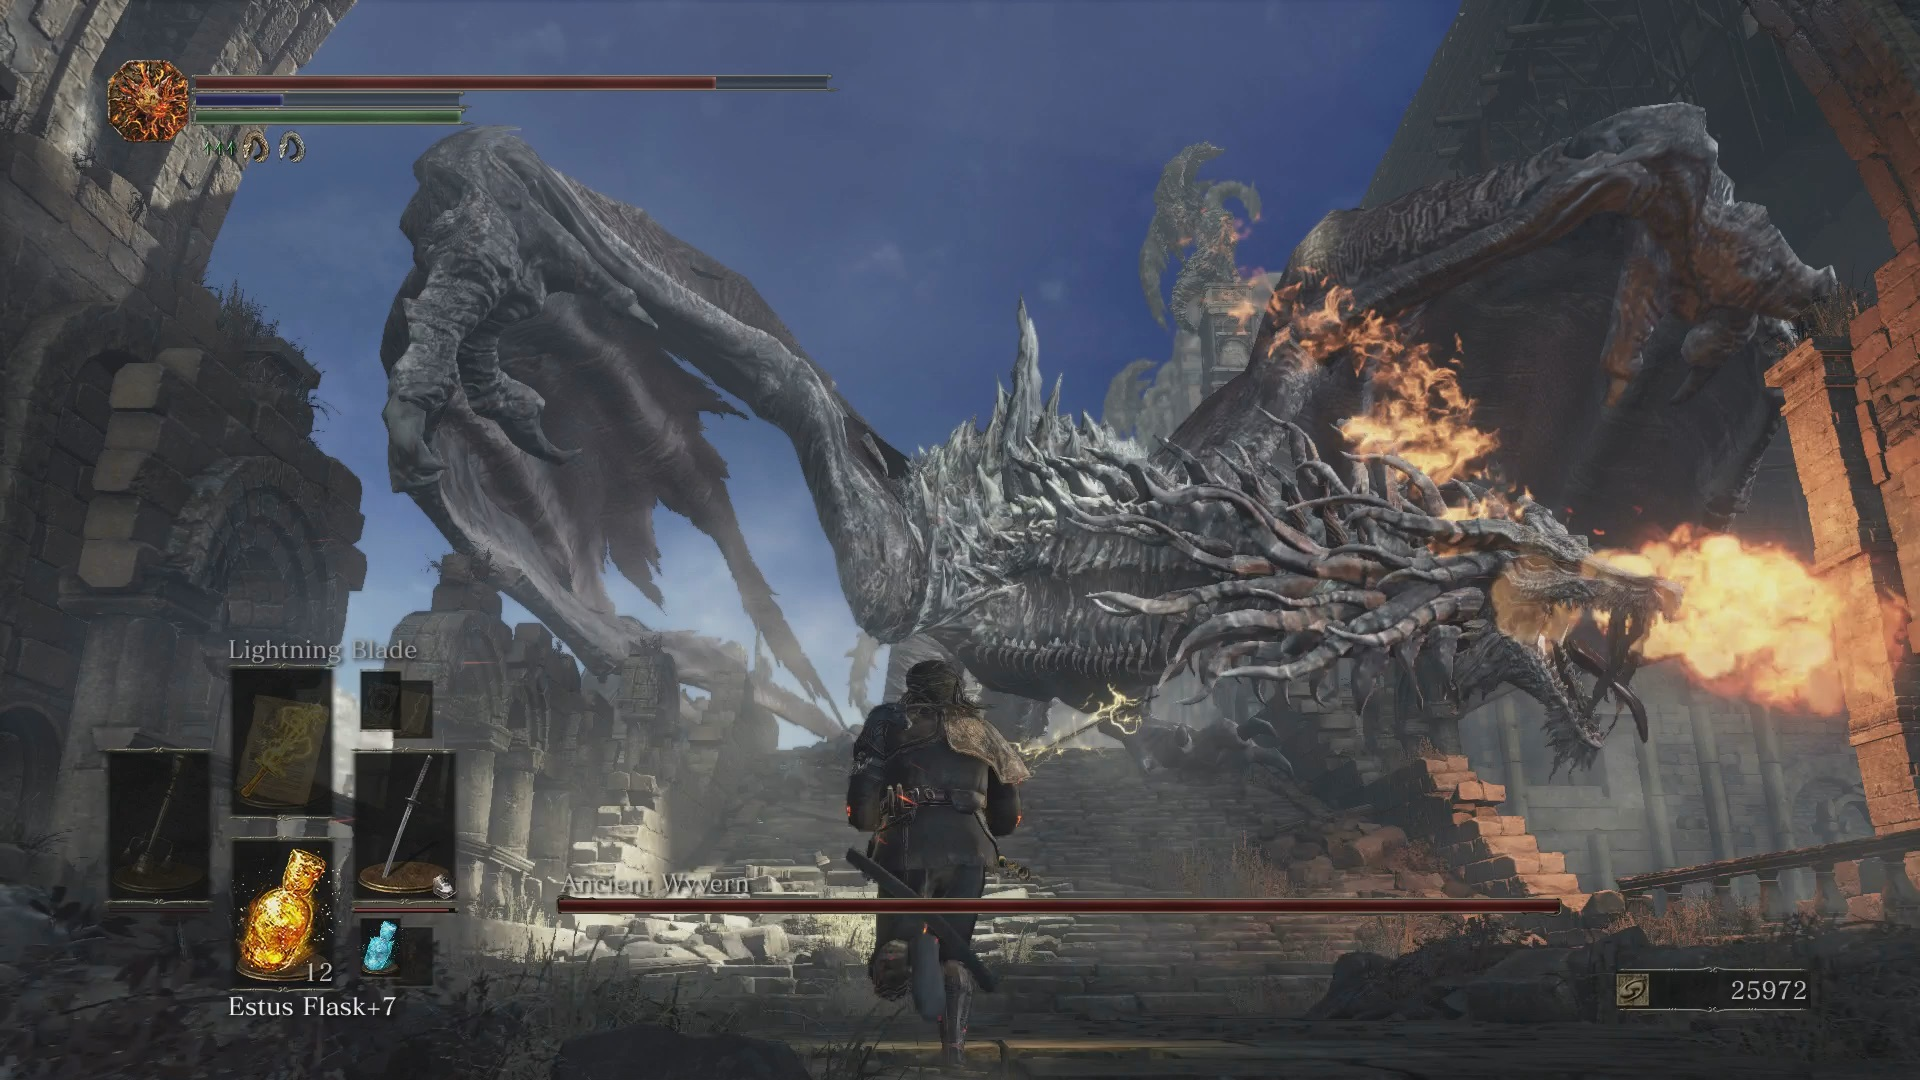 Dark Souls Iii Playstation 4 Nerd Bacon Reviews Game Ps4 Soul Of The Year Edition 3 Boss Dragon